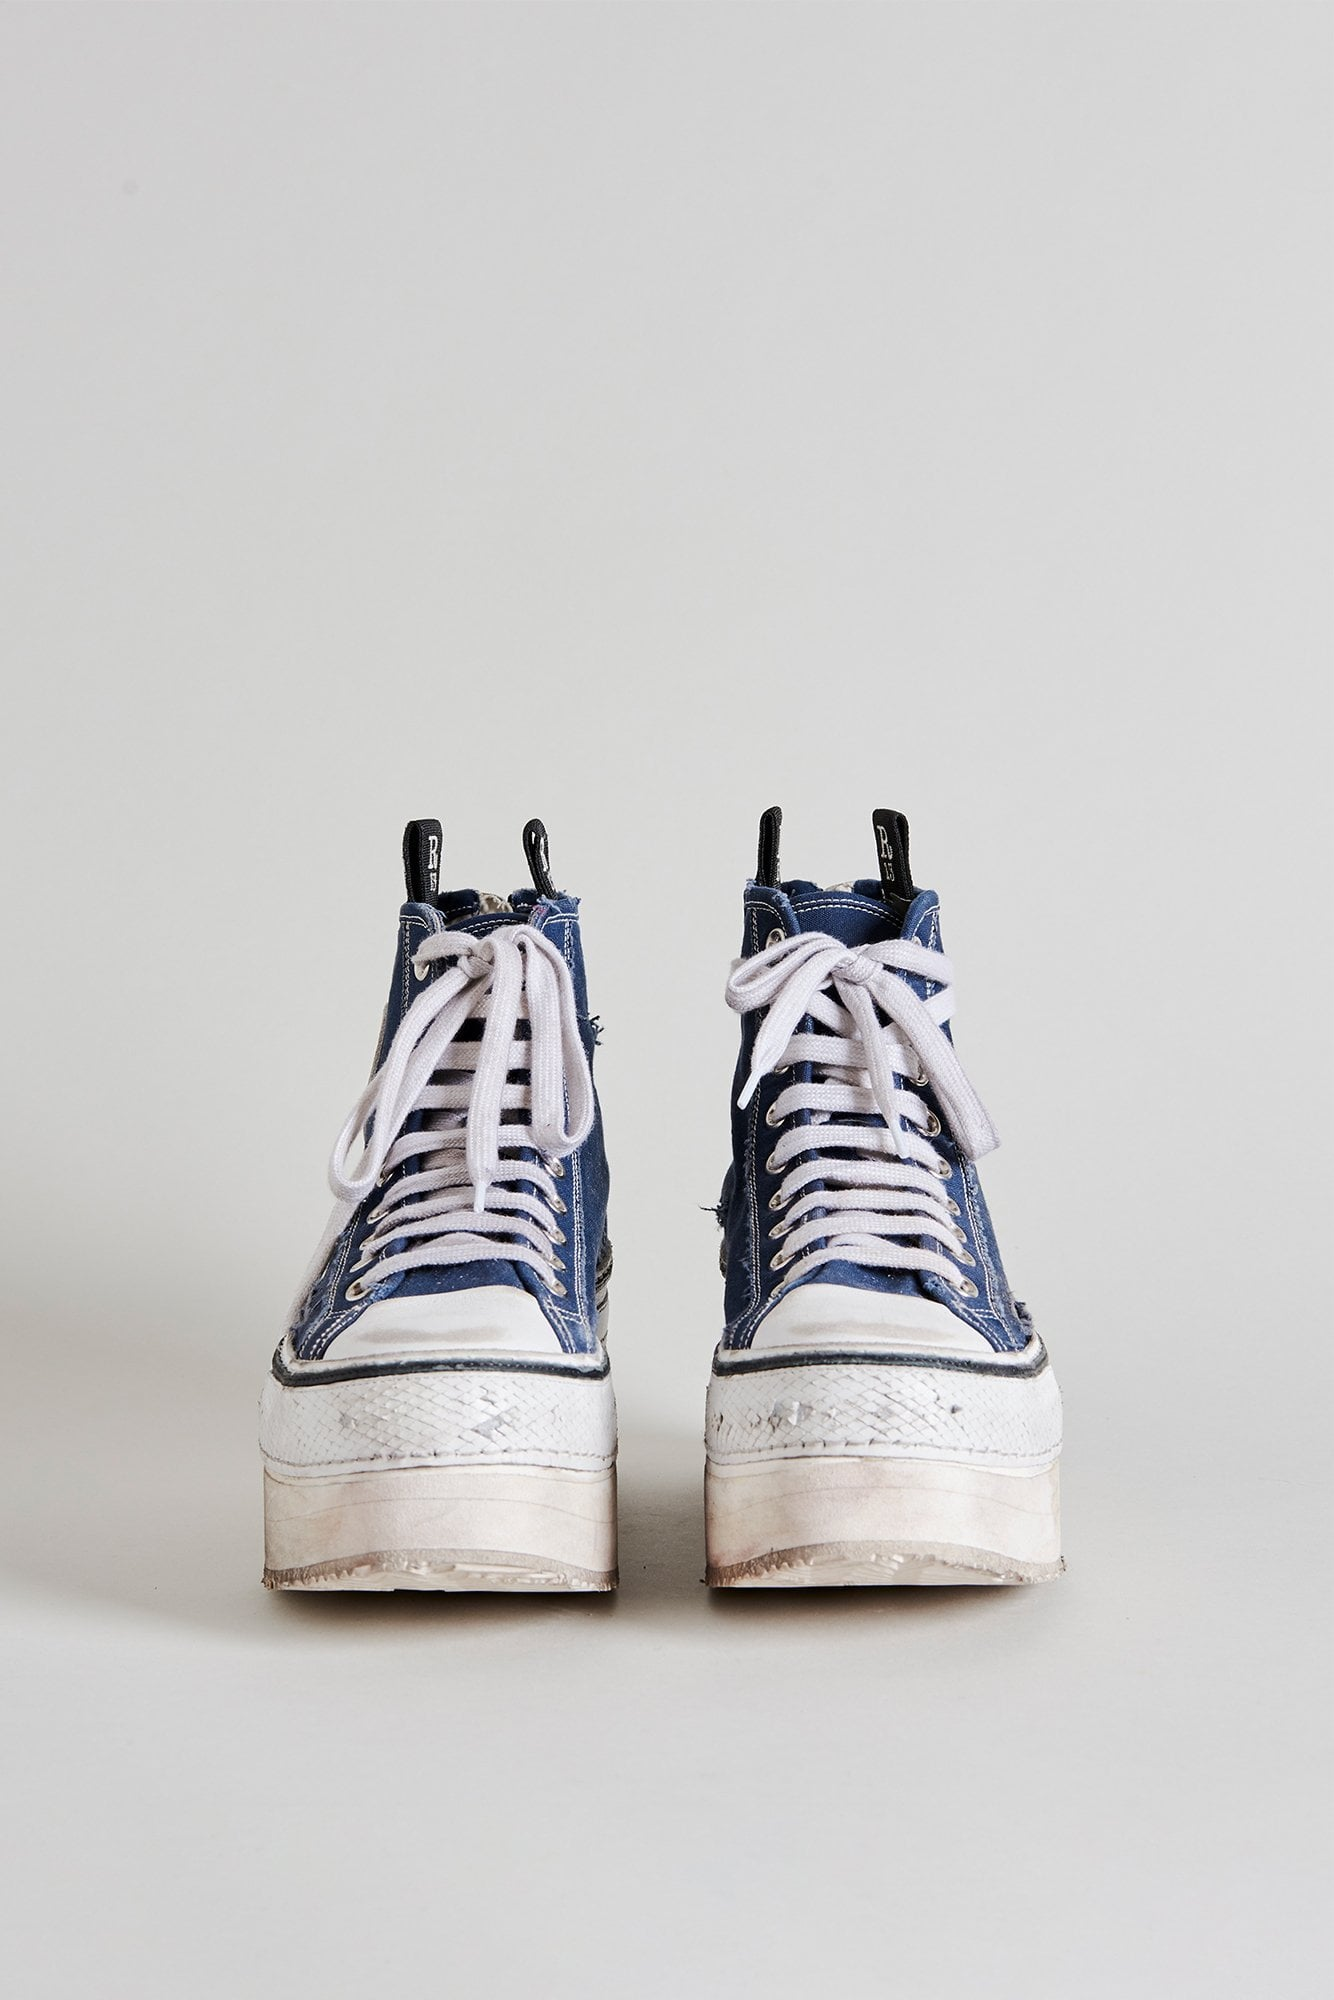 Platform High Top Sneakers - Navy